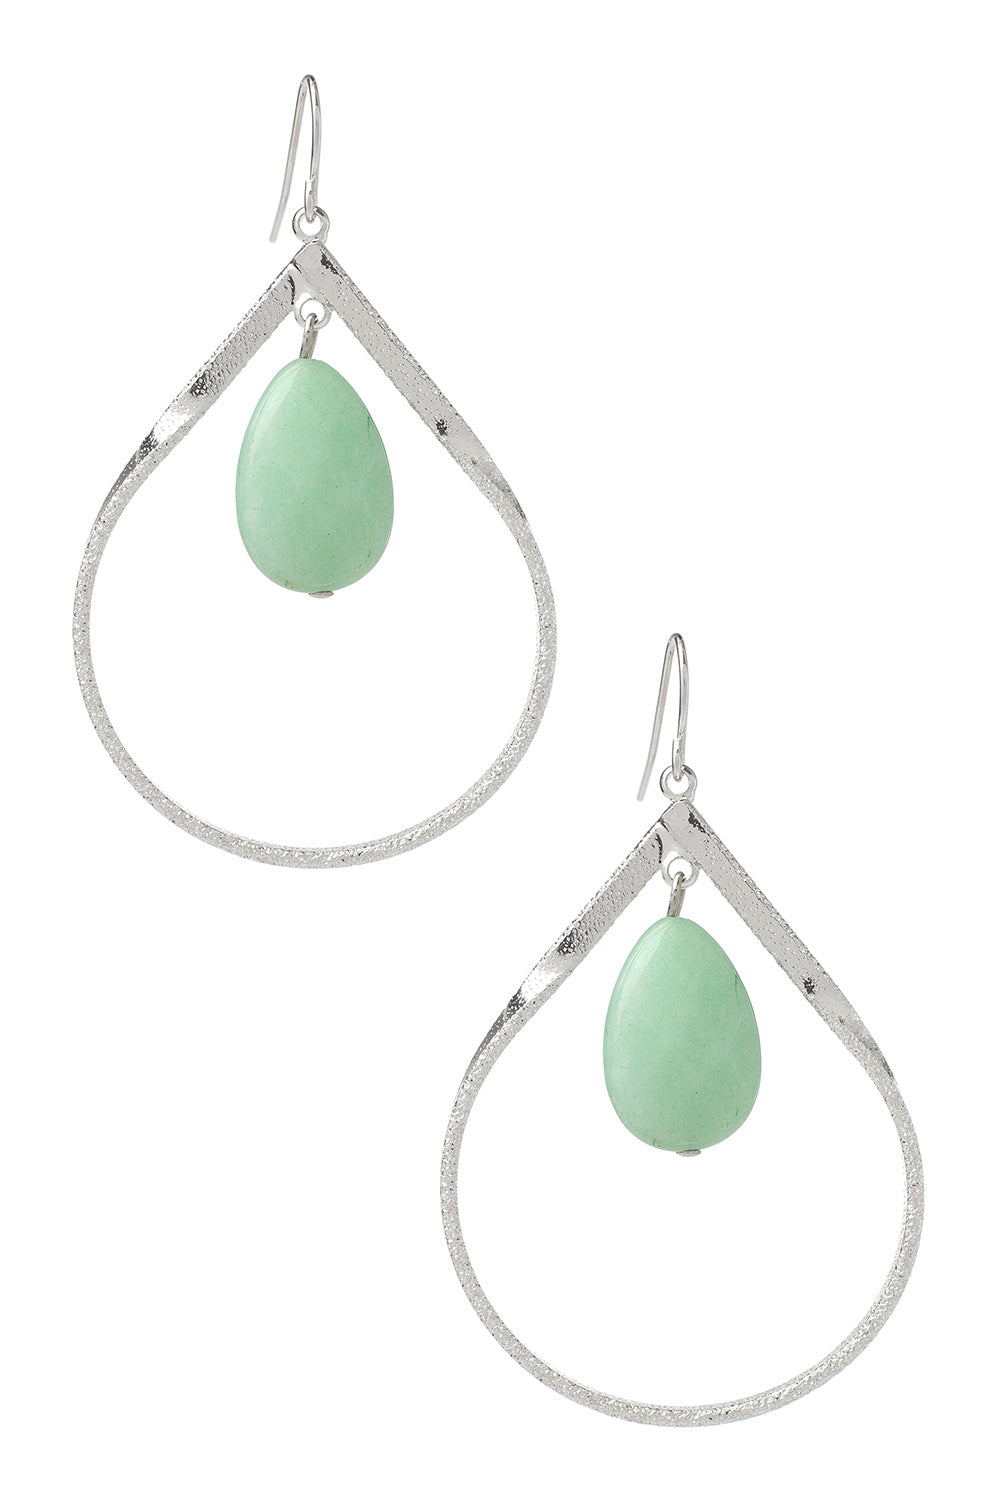 Type 2 Loyalty Earrings in Green